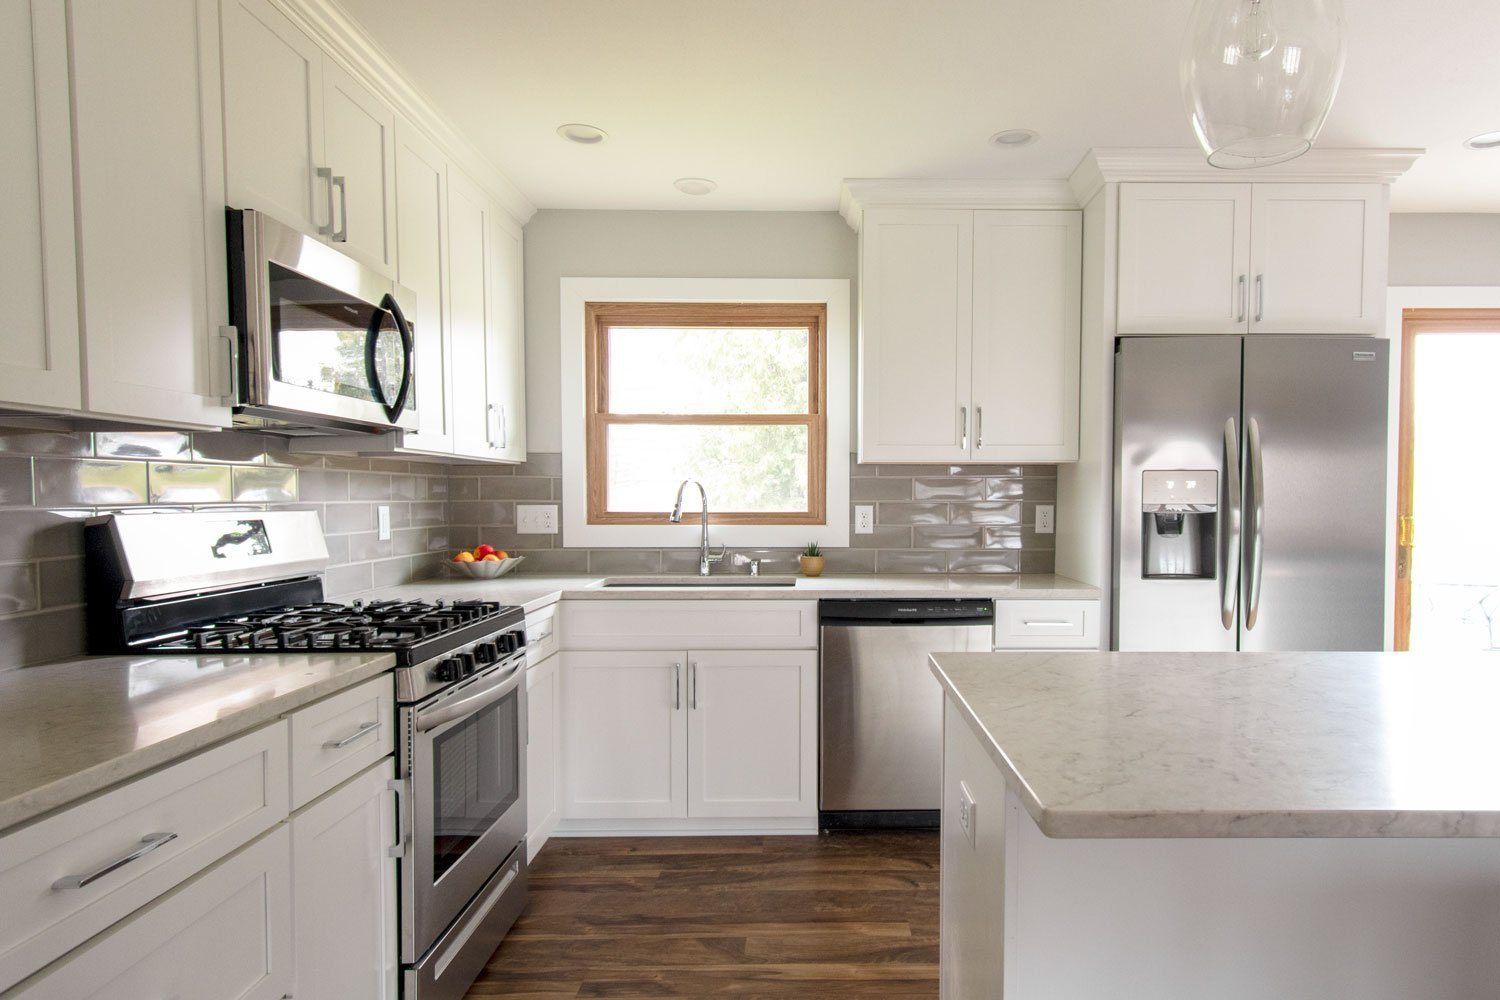 Hartland gray subway tile backsplash